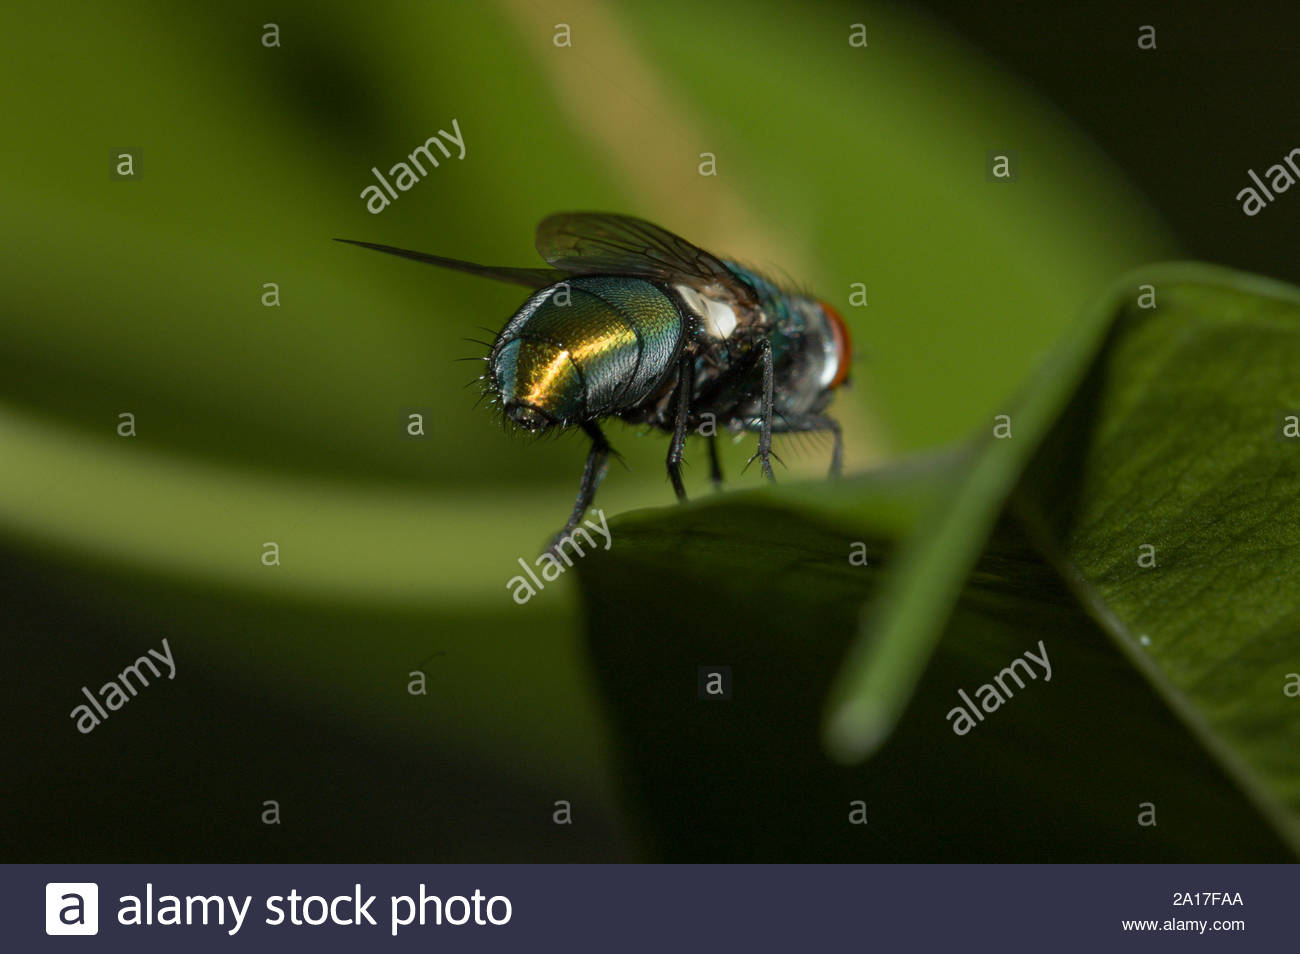 a-green-bottle-blow-fly-lucilia-sericata